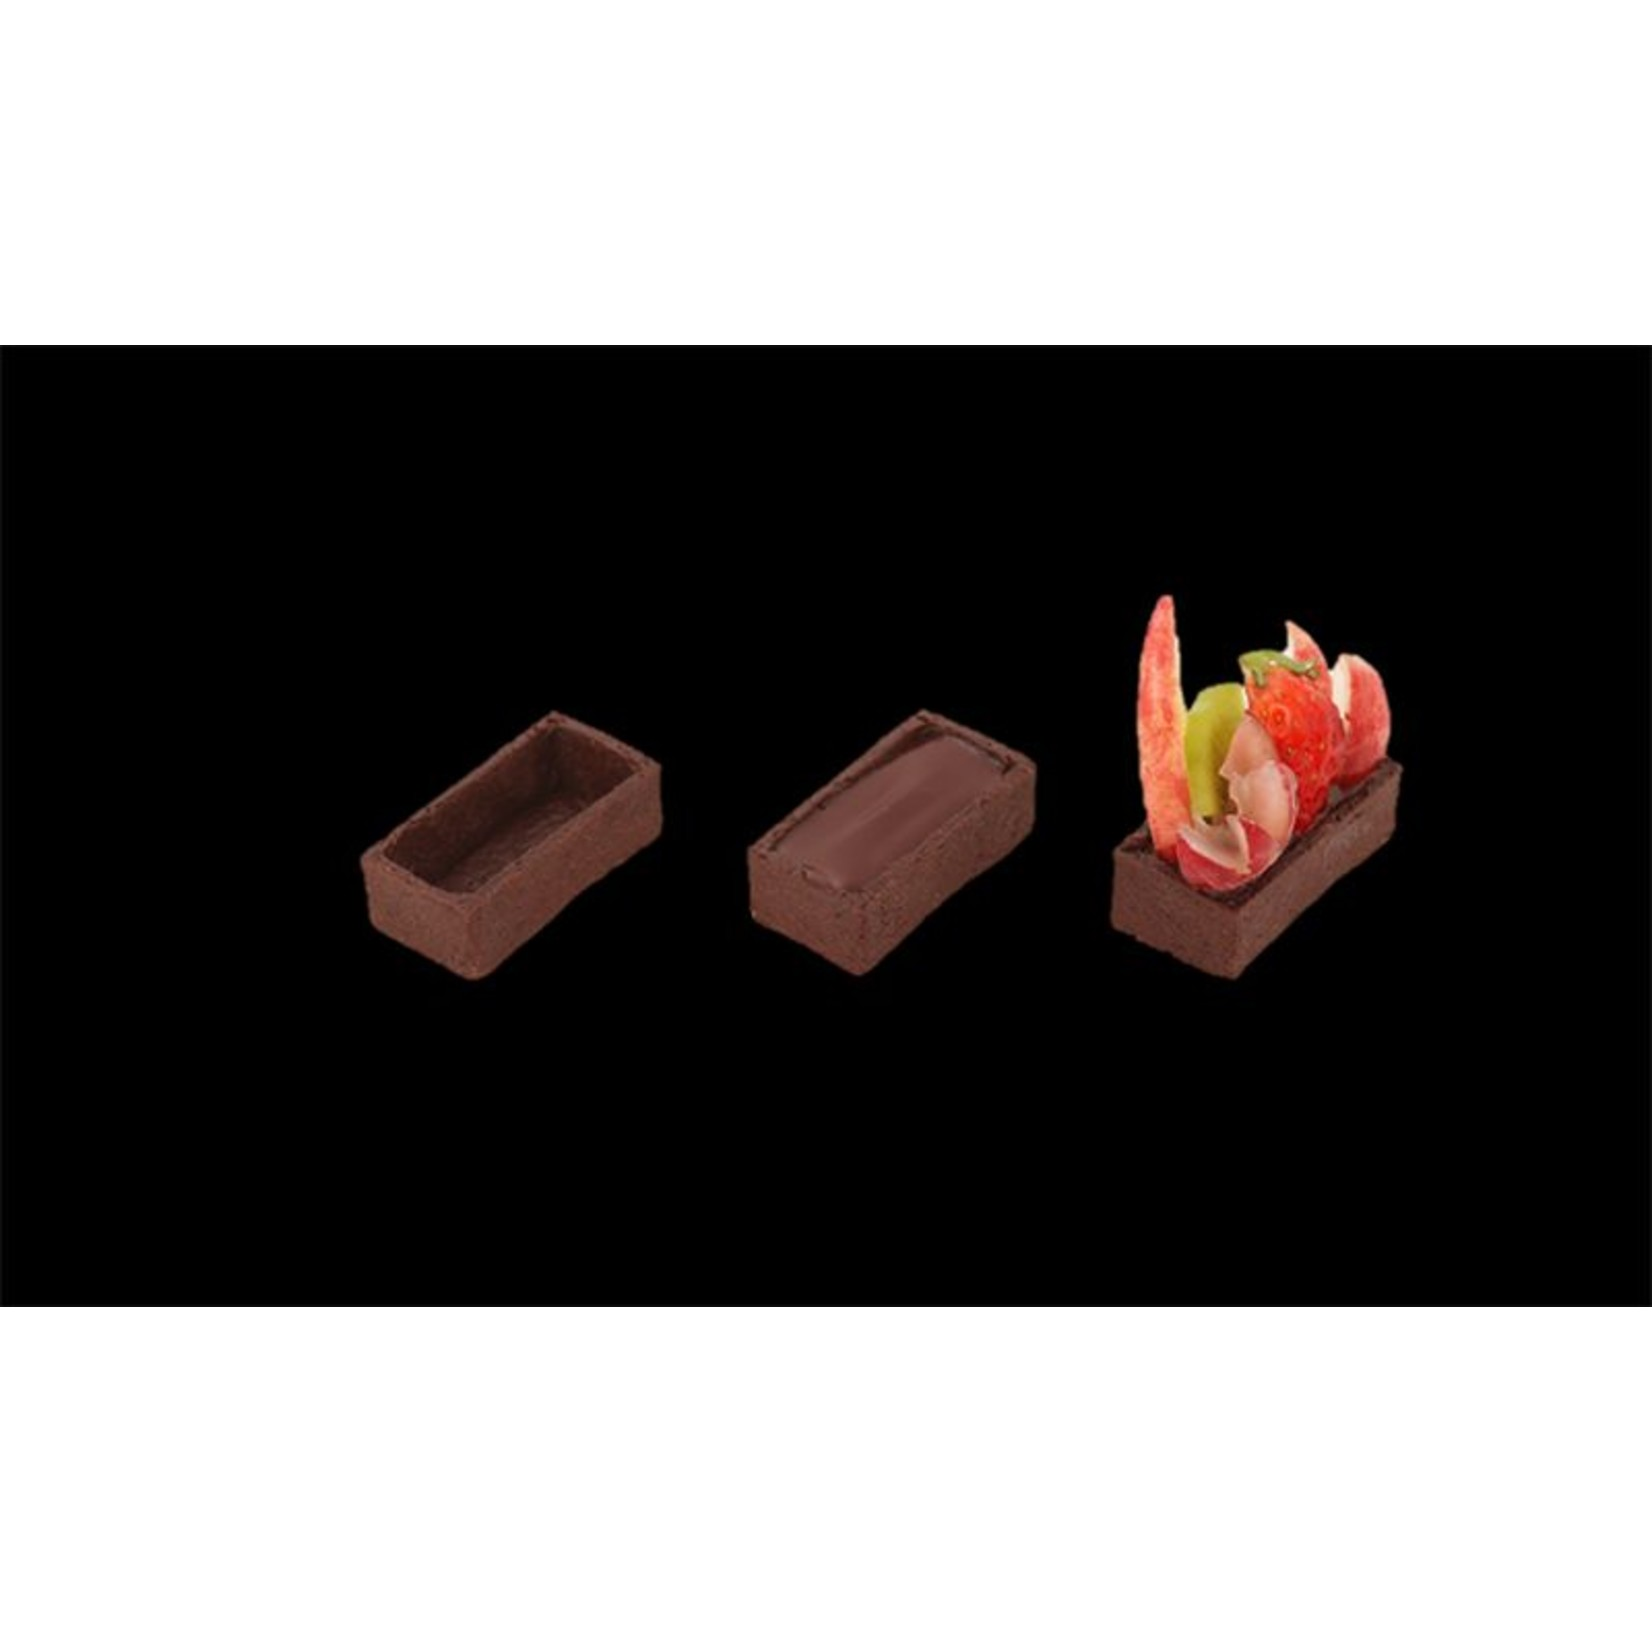 Delifrance Delifrance - Tart shell, Chocolate rectangle - 2x1'' (240ct), 79037